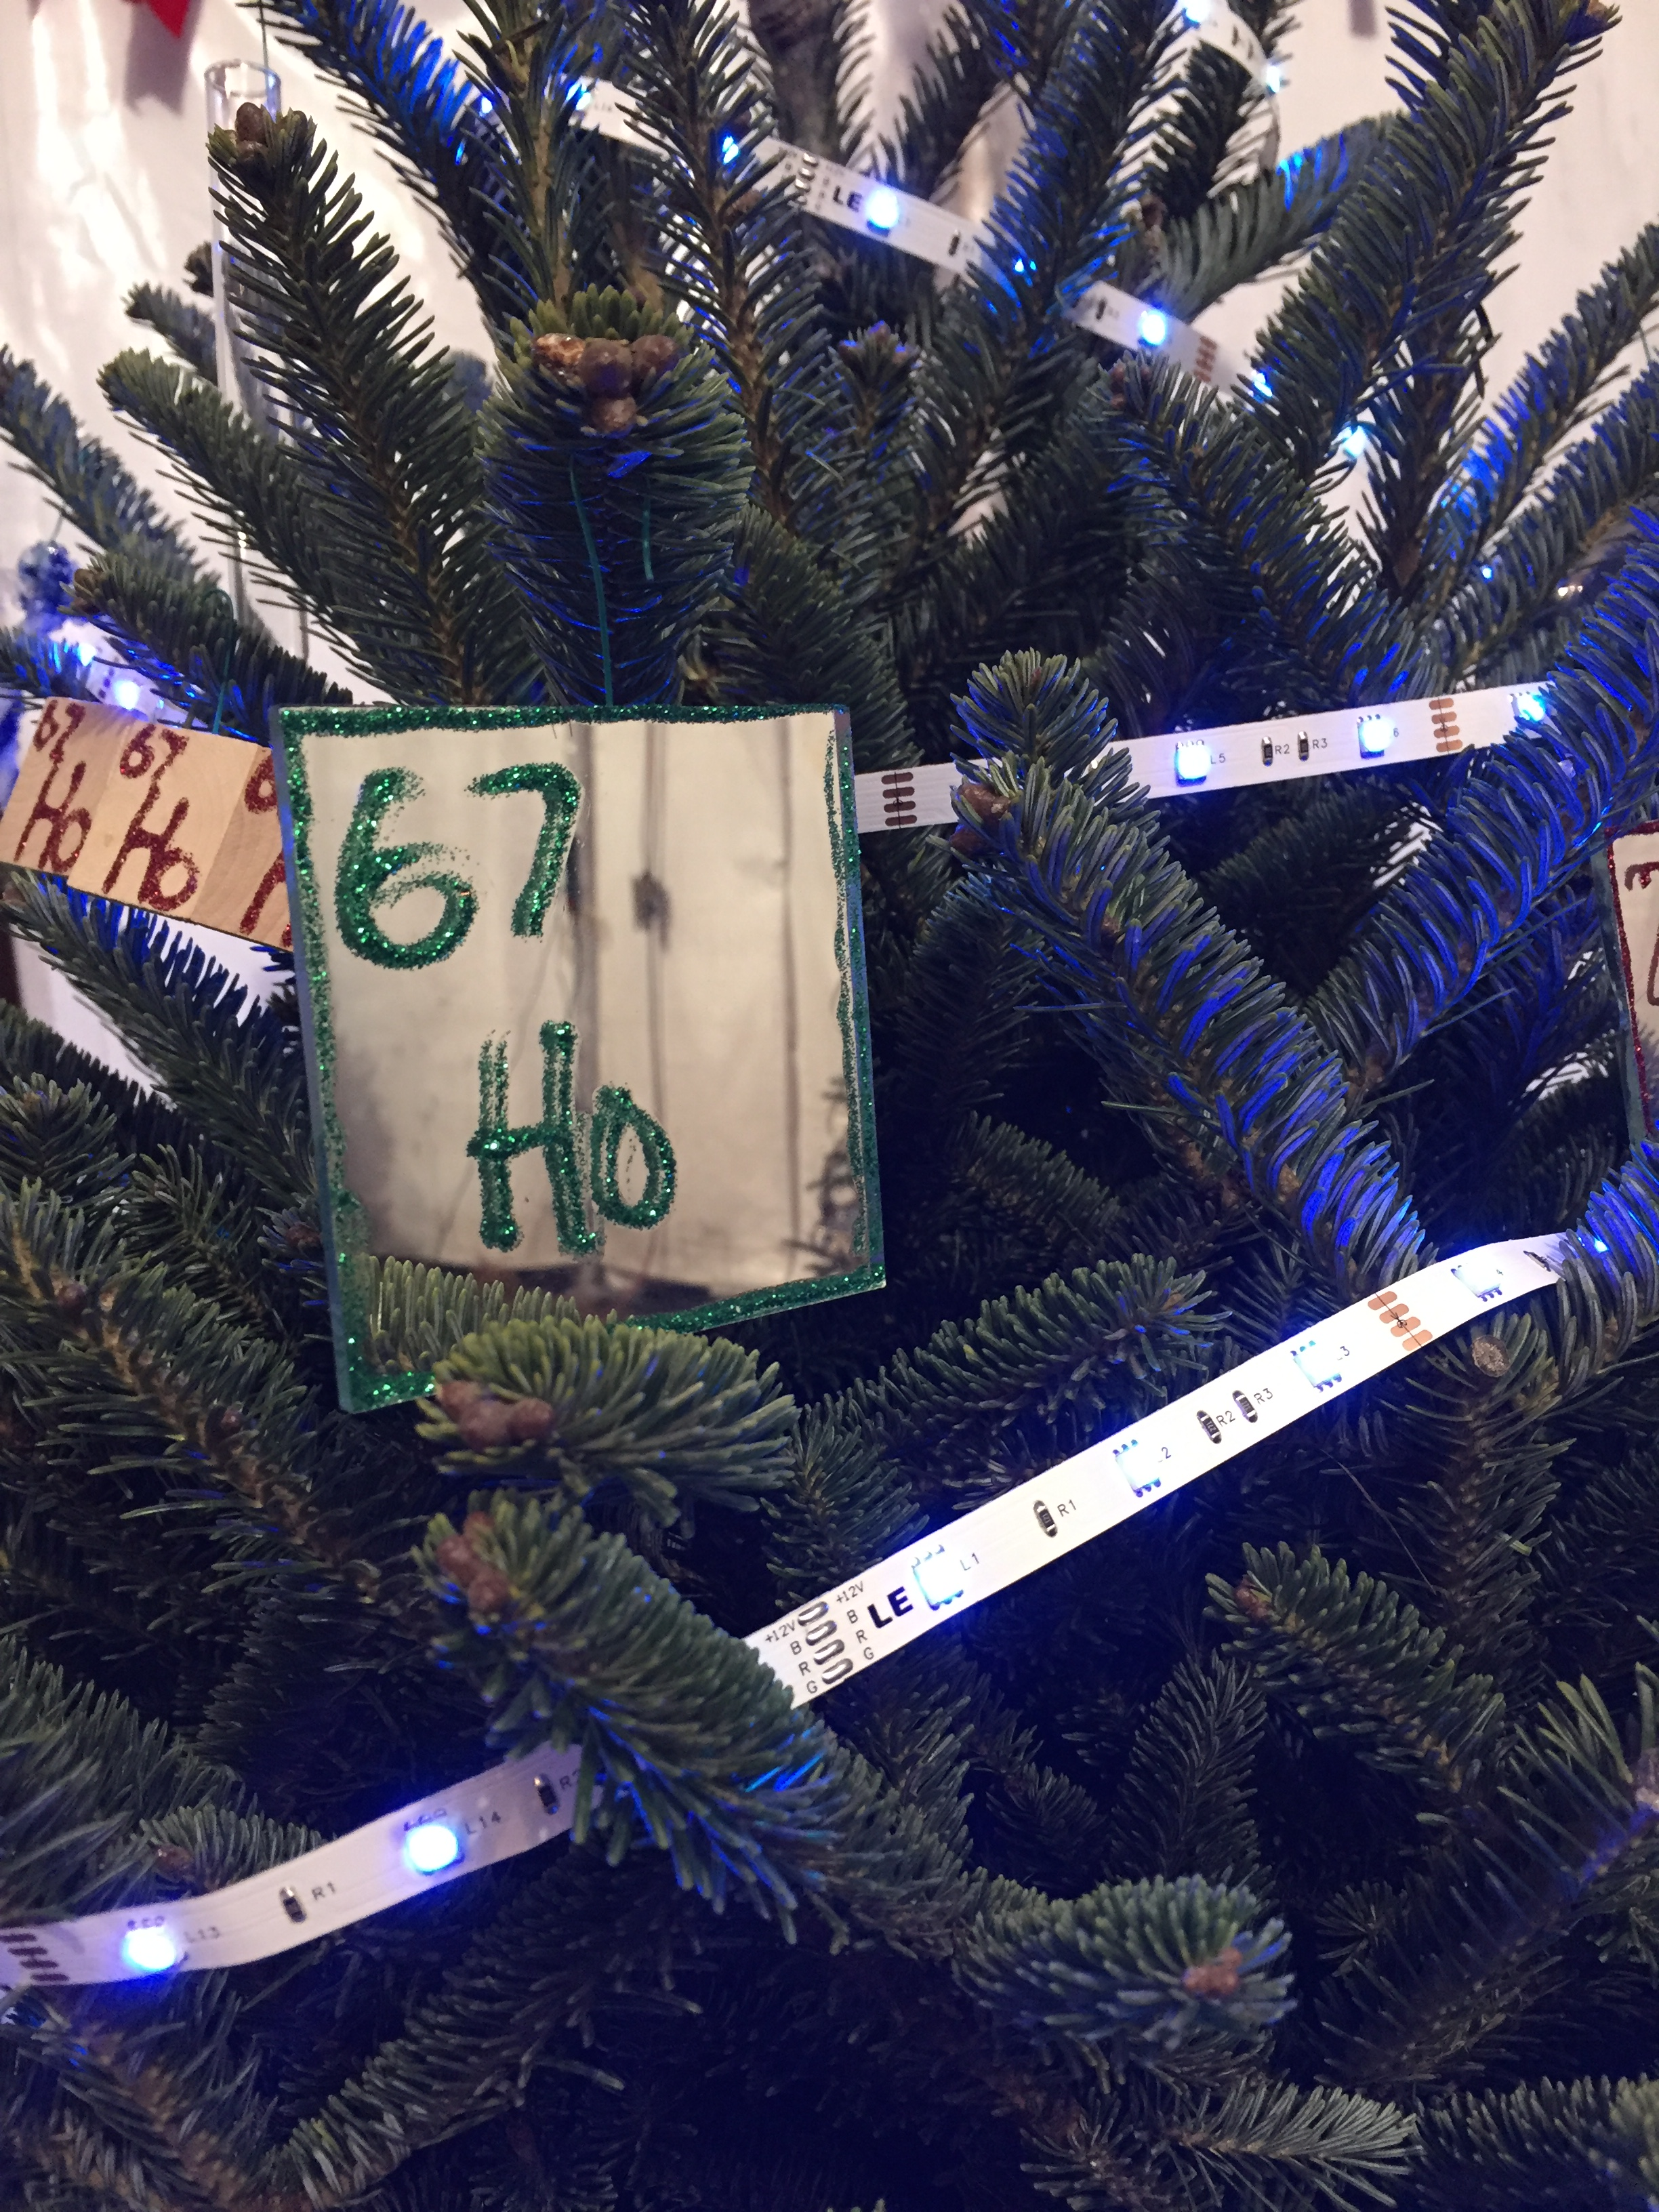 chemisTREE detail